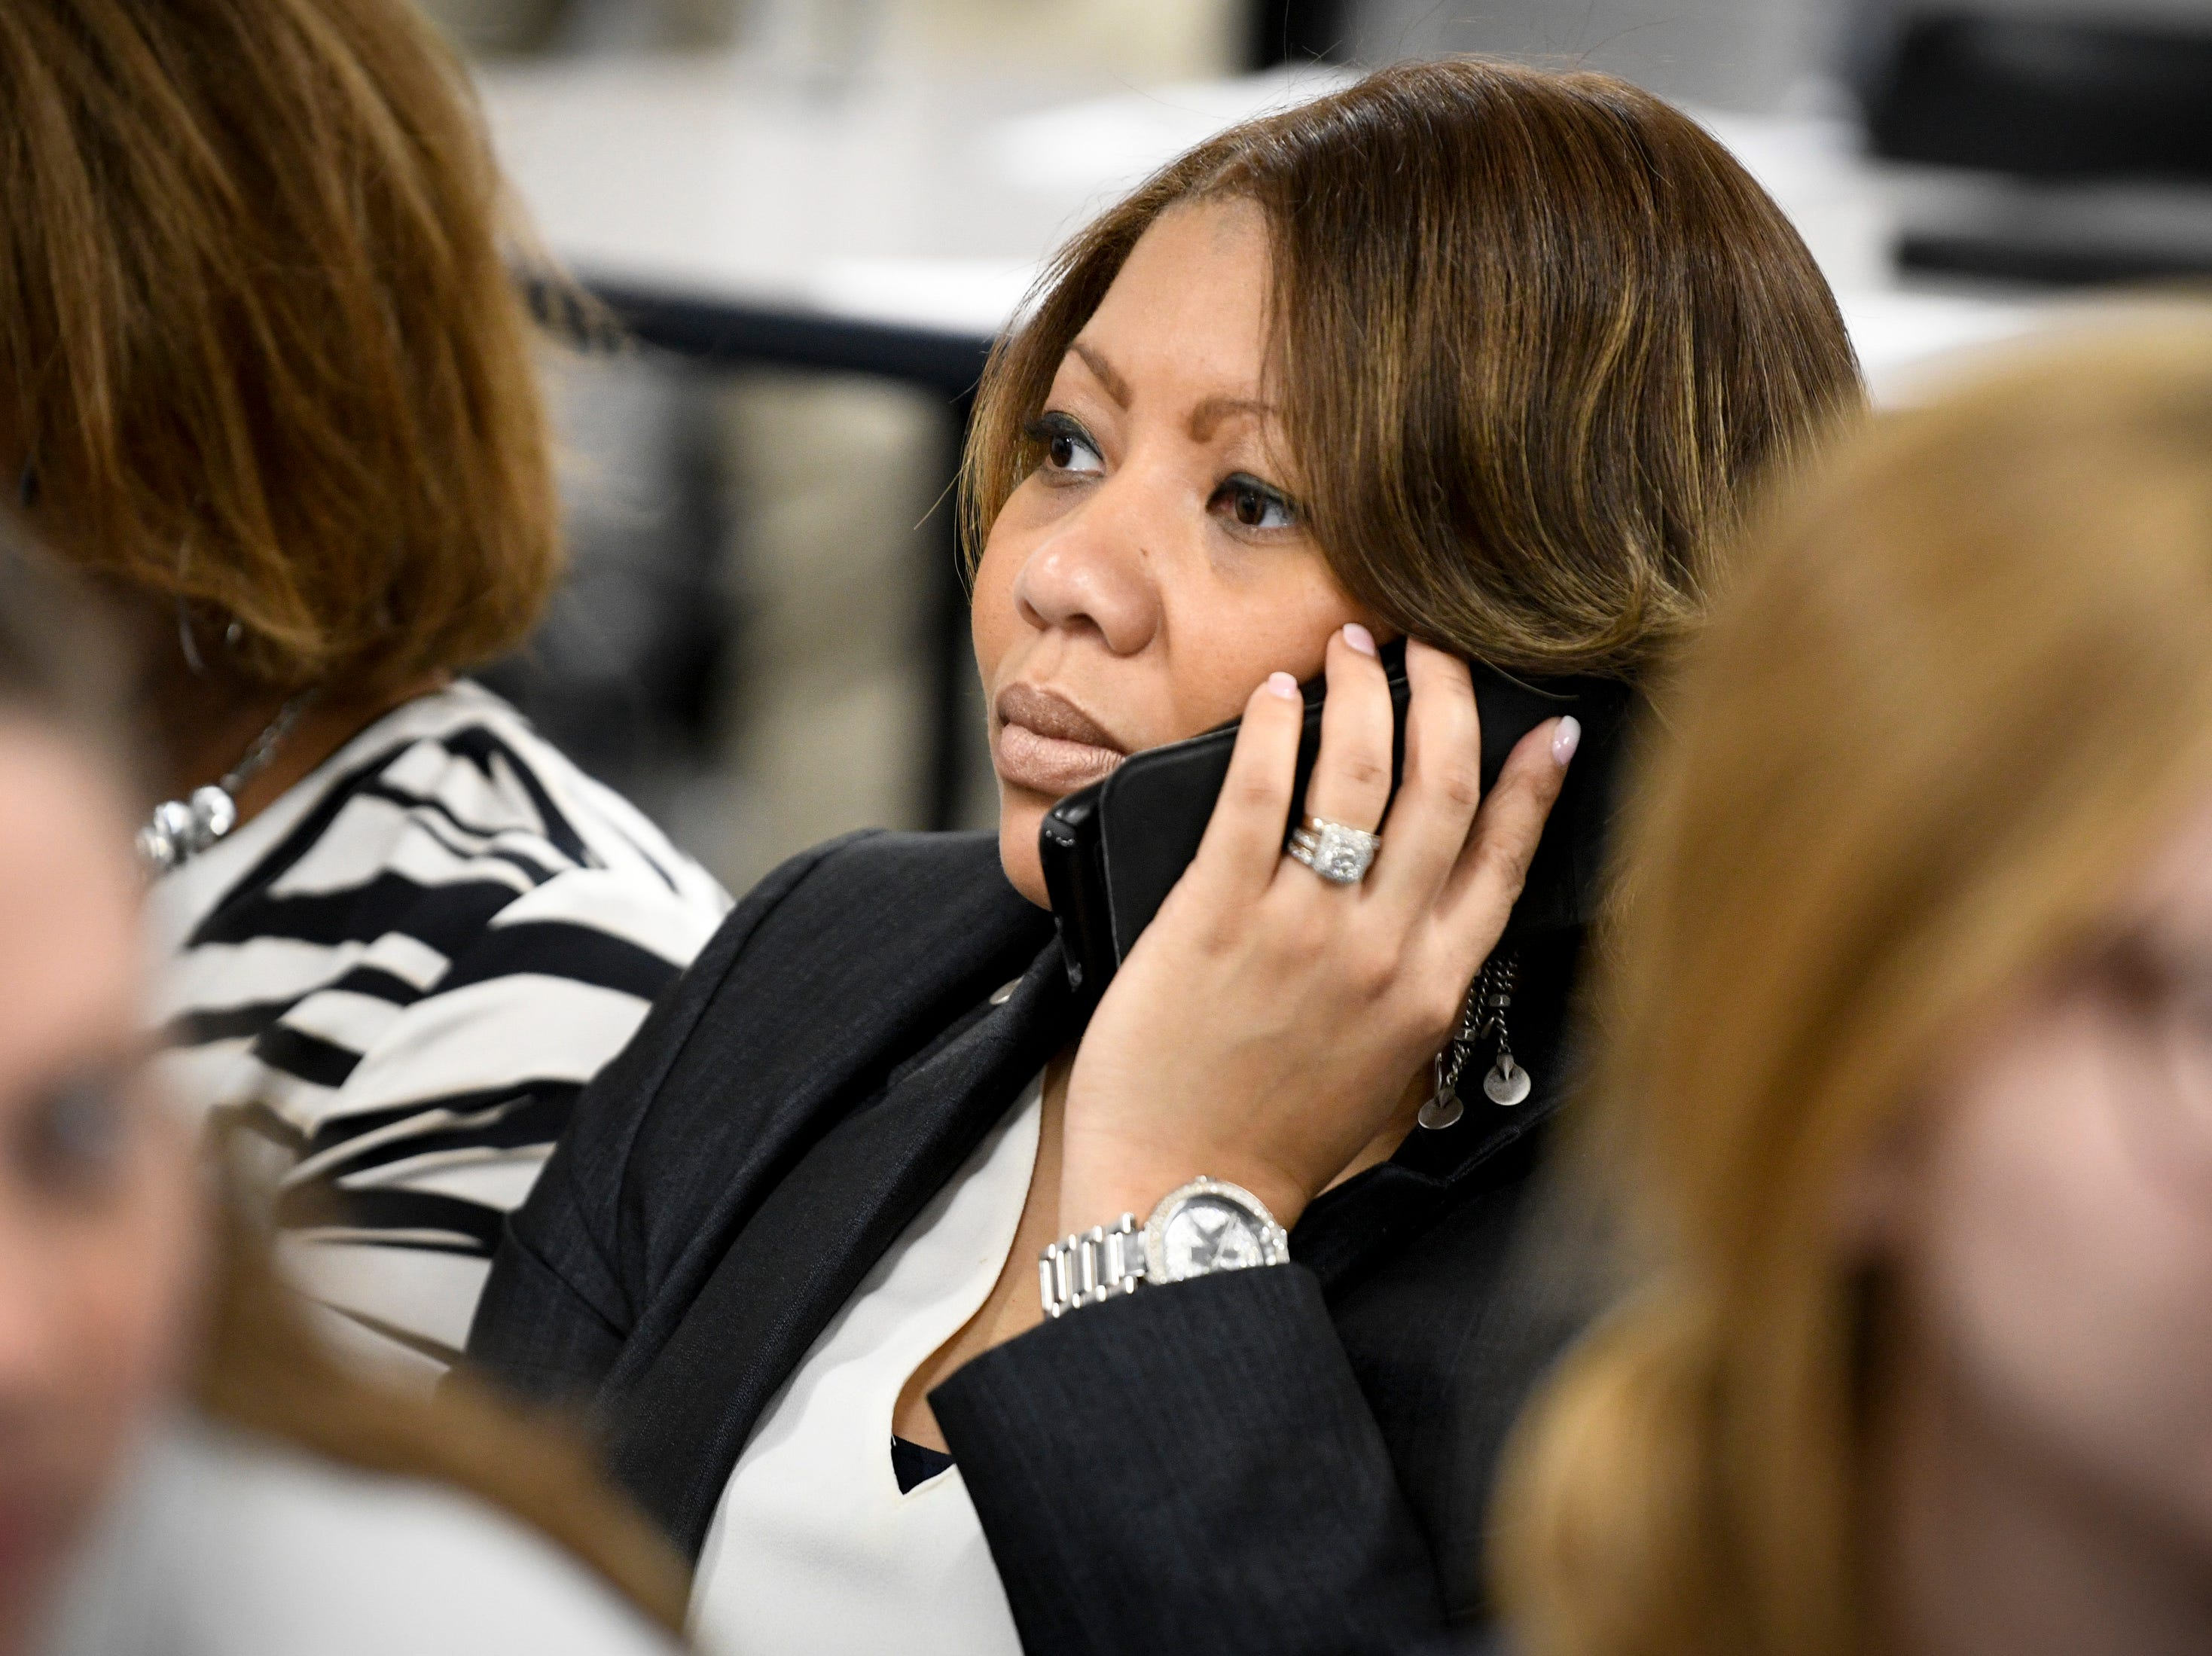 MNPS Community Superintendent Dr. Adrienne Battle makes a phone call before the MNPS Board of Public Education meeting at the Administration Building of Metropolitan Public Schools in Nashville, Tenn., Tuesday, April 9, 2019.